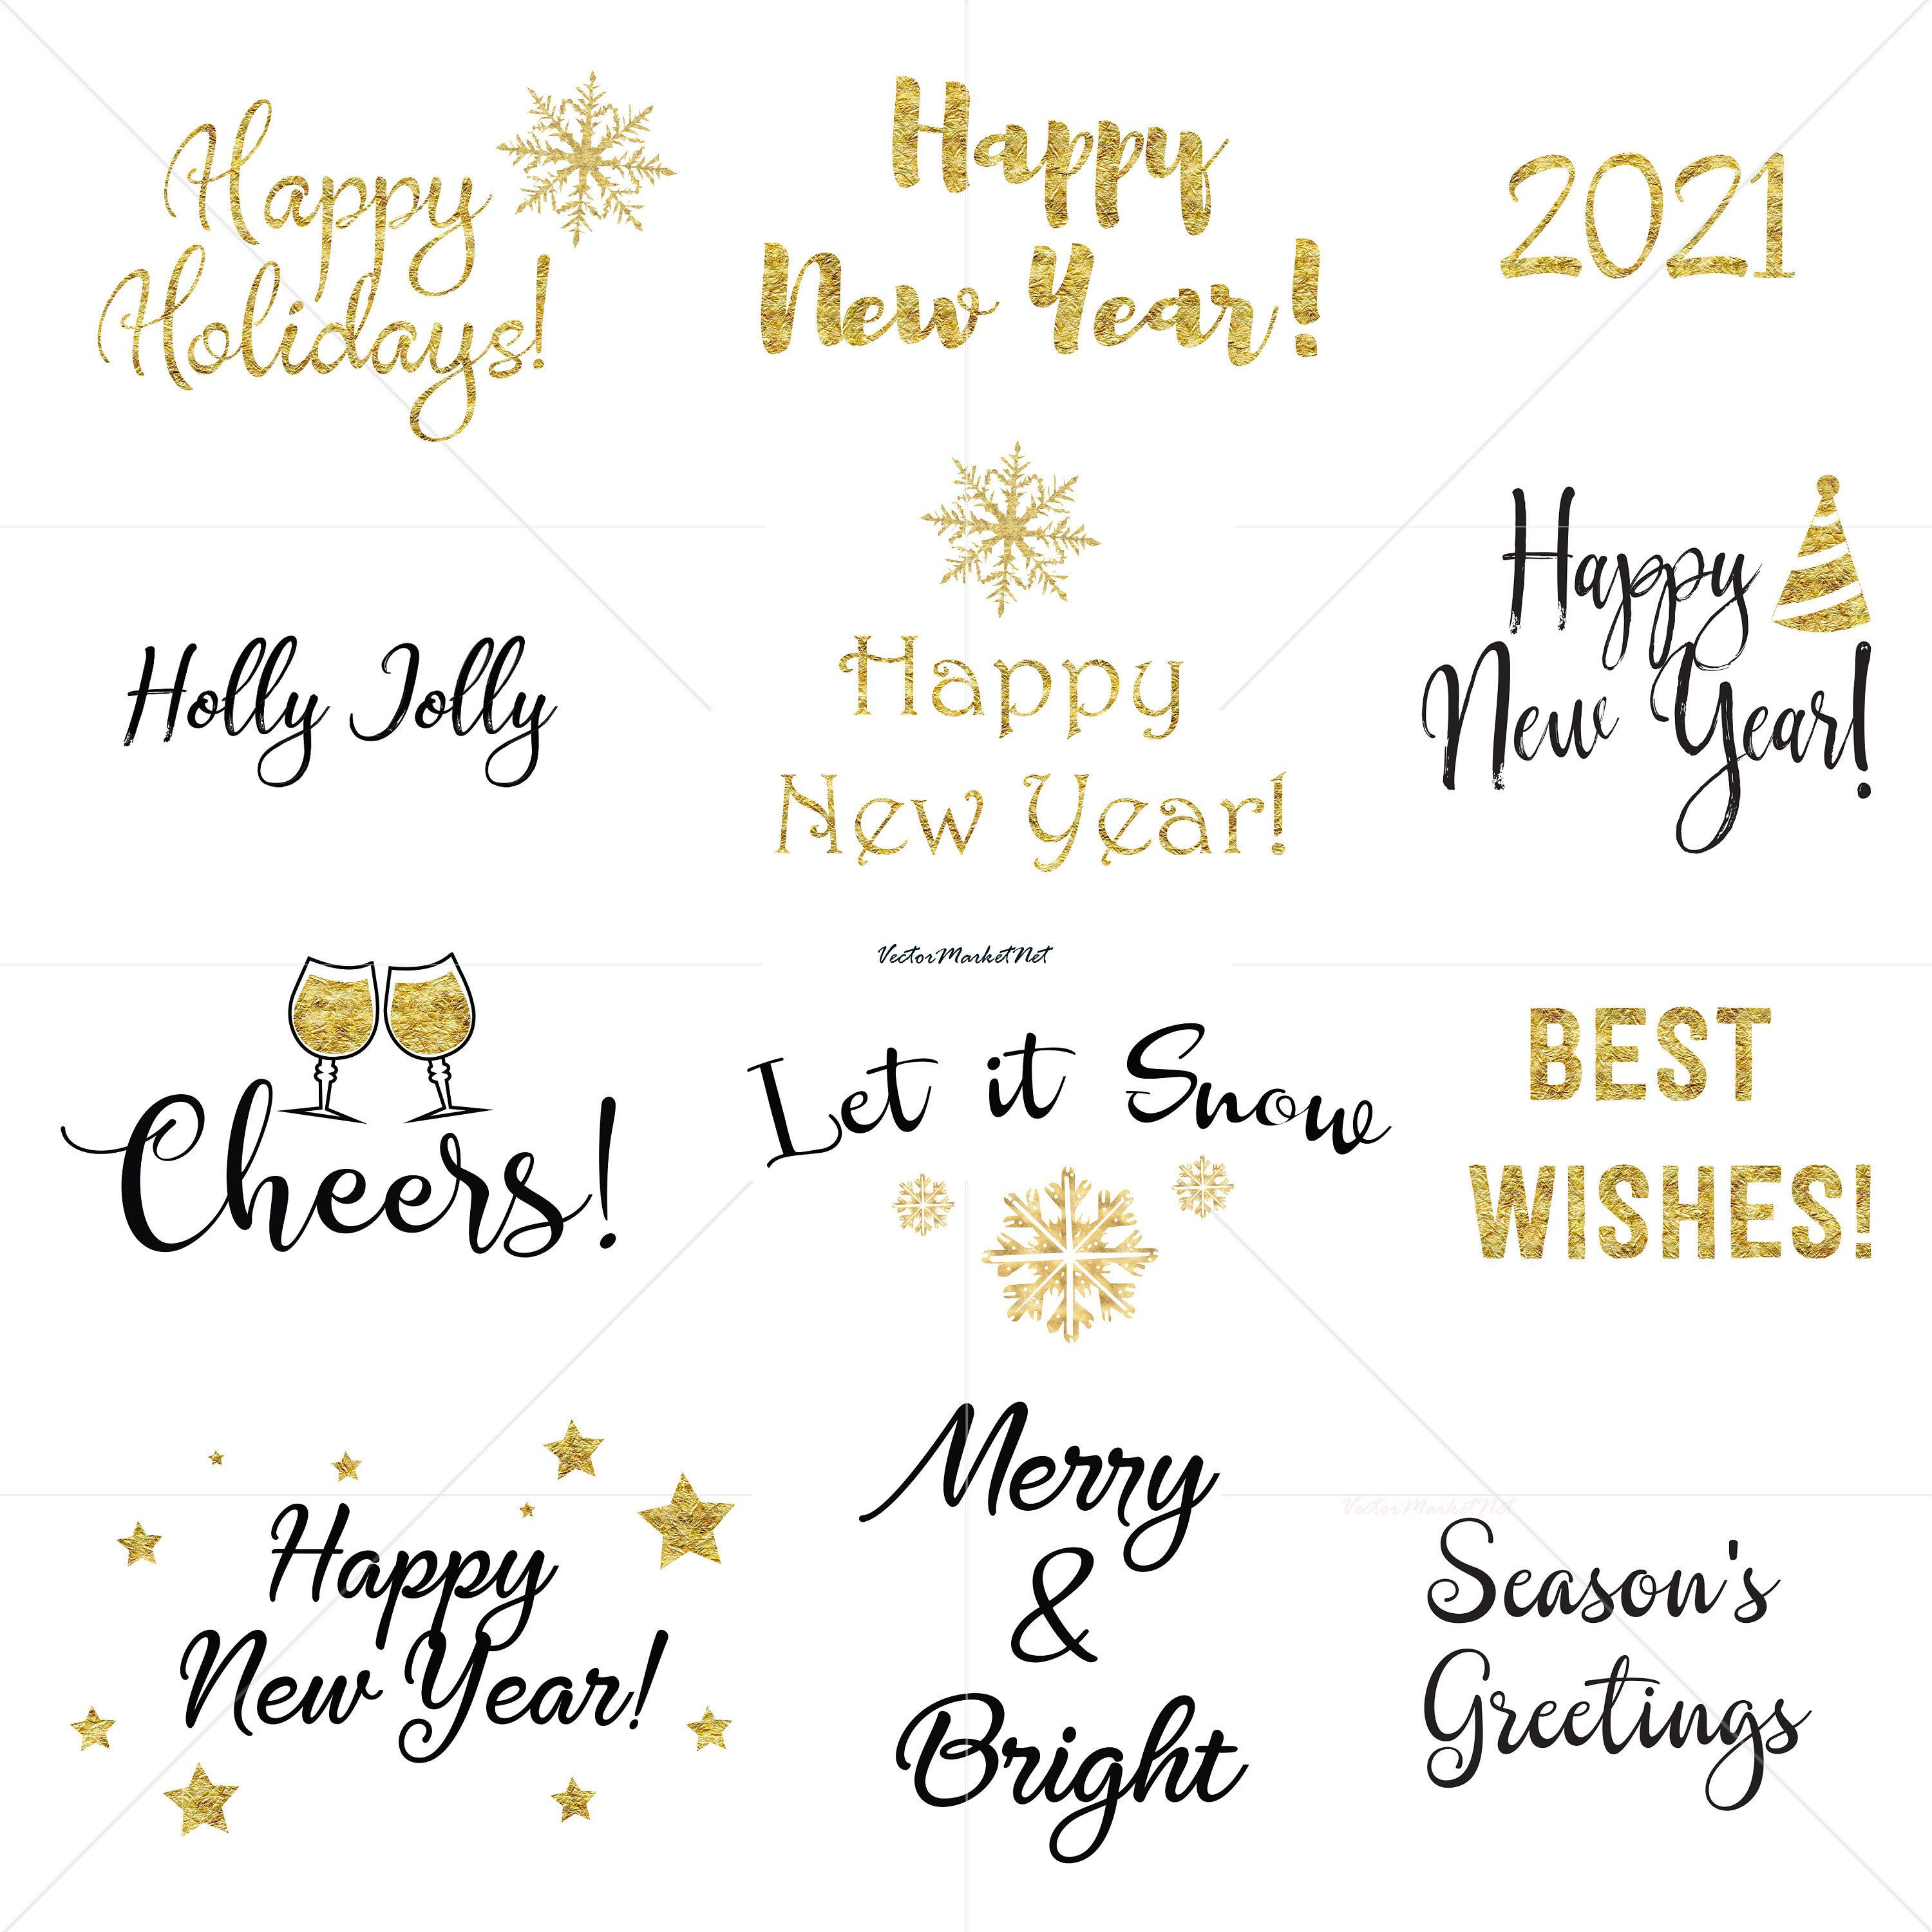 Happy New Year 2021 Clip Art Instant Download Christmas Concept Digital Clip Art In The Black Color And Gold Foil Clip Art Digital Clip Art Lettering